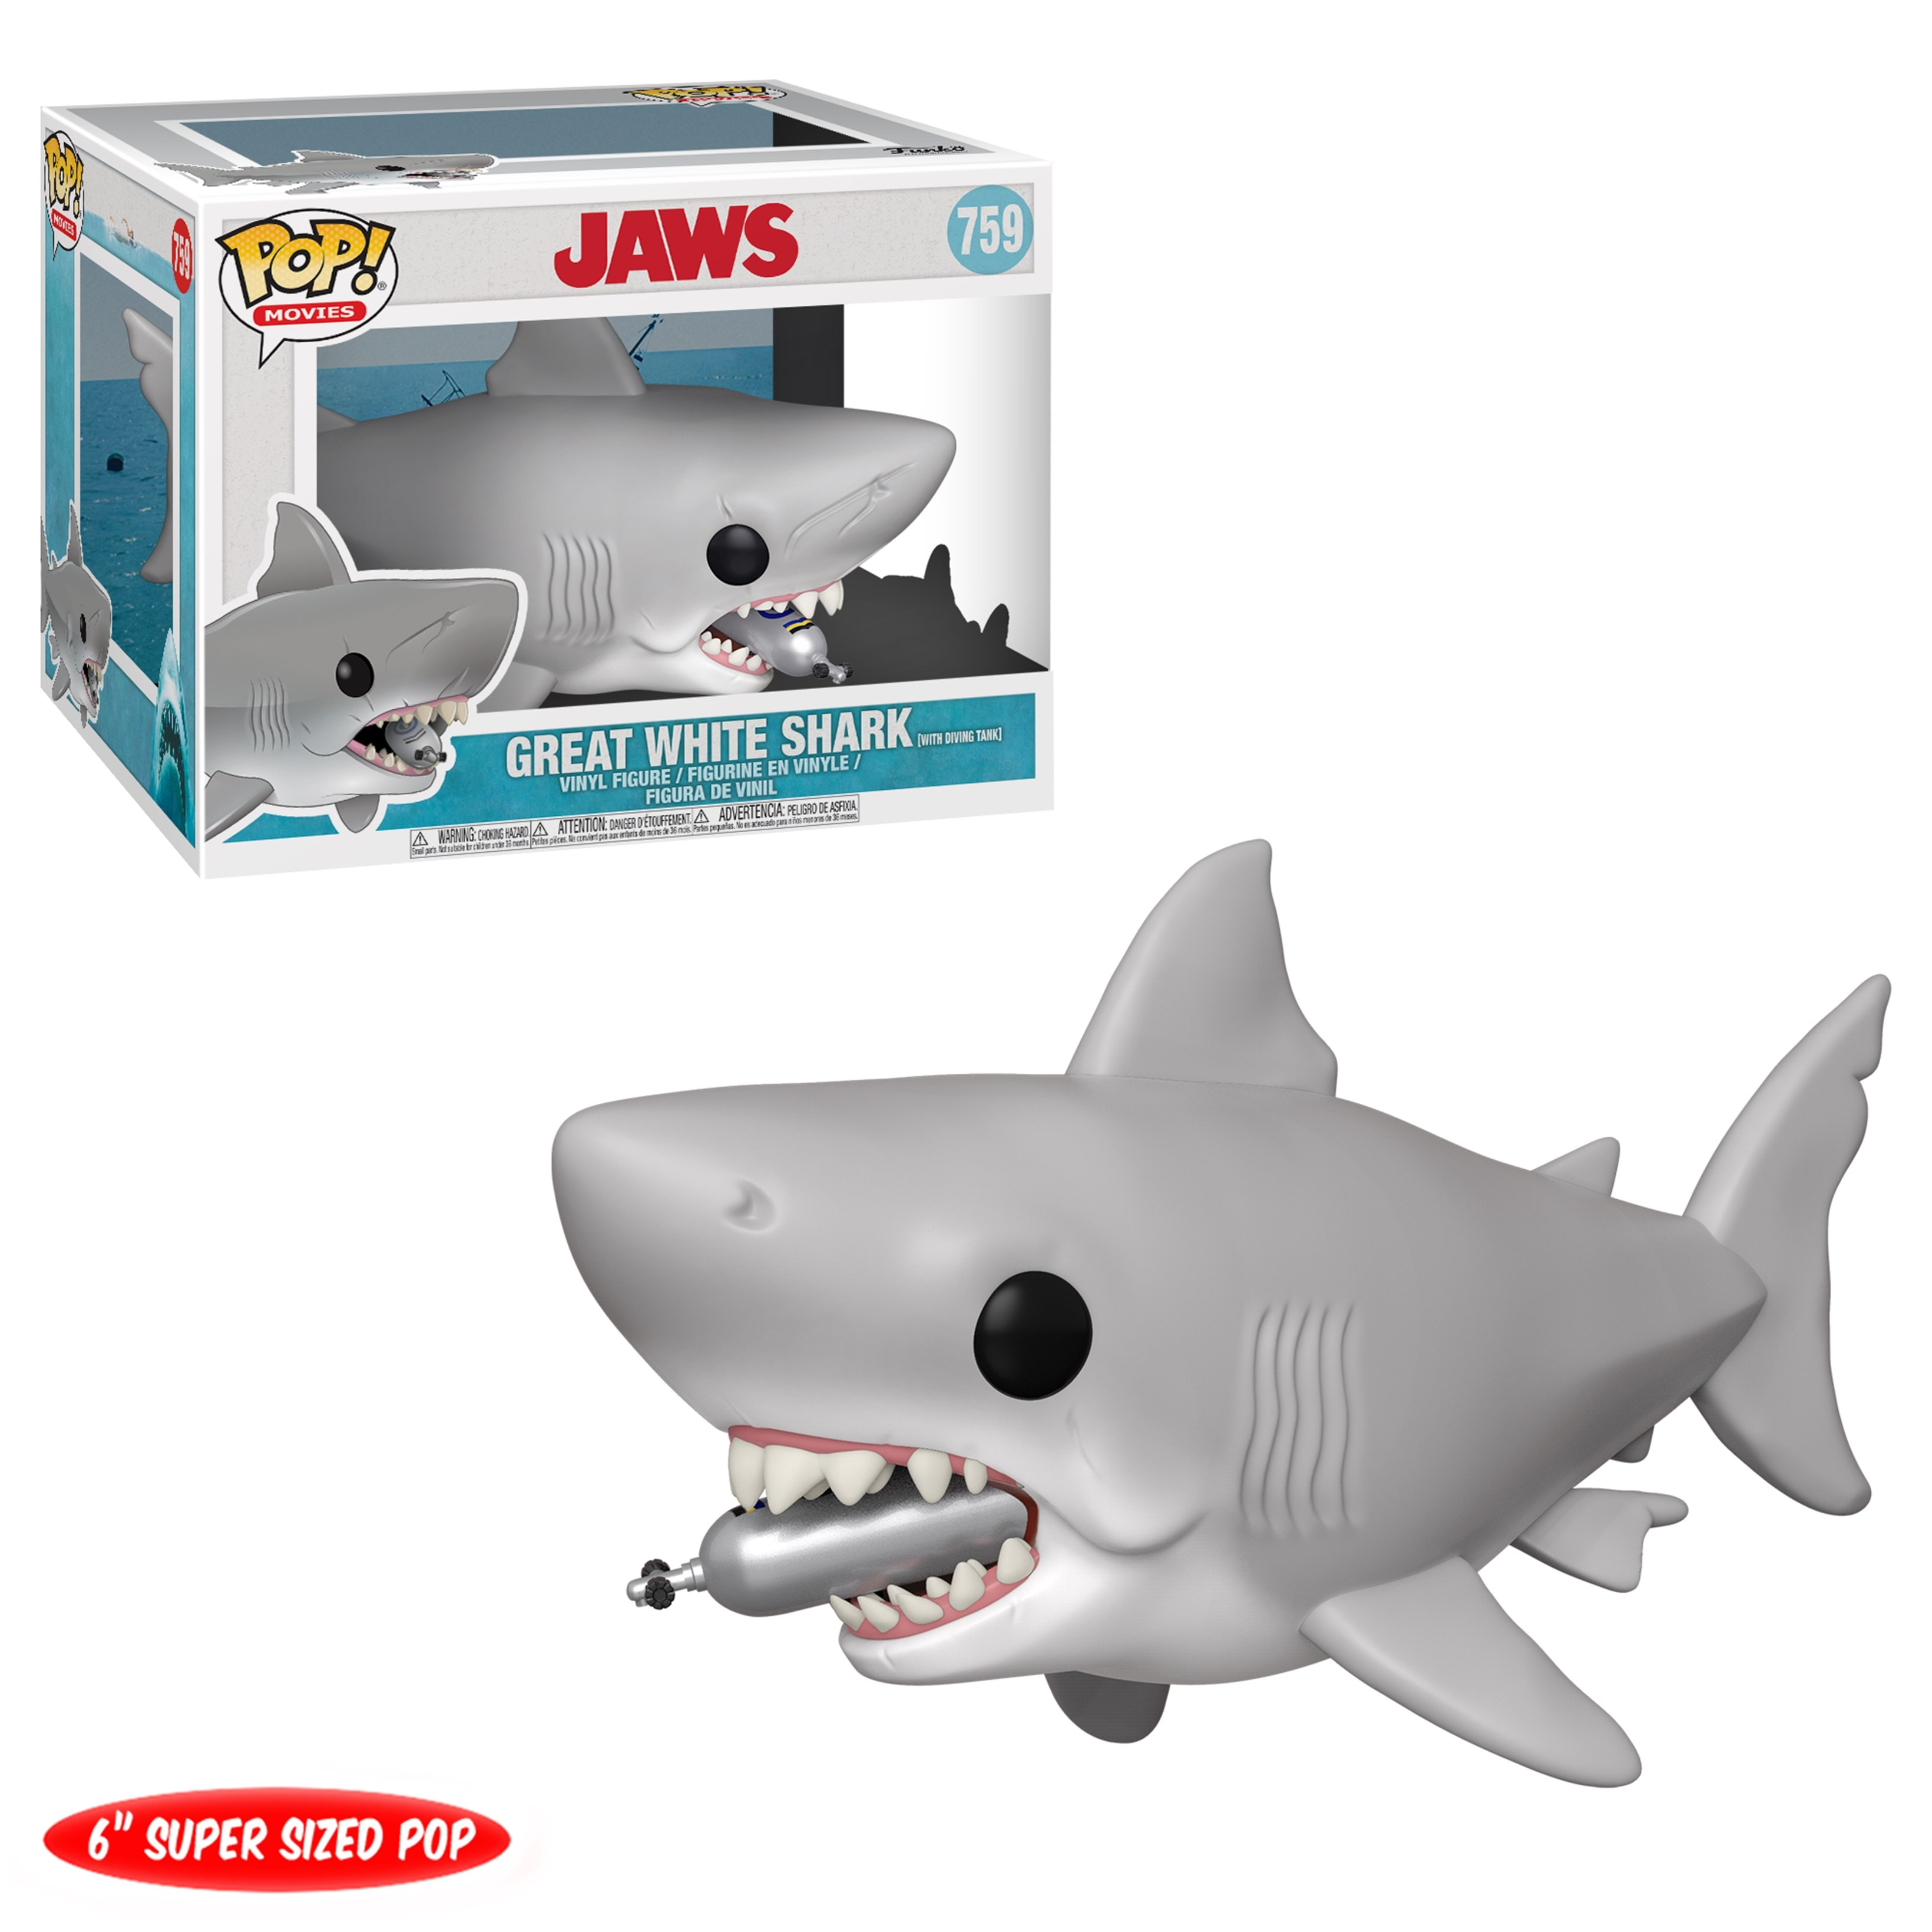 Pop Vinyl: Jaws With Diving Tank (759): Great White Shark: 6 Inch - 1